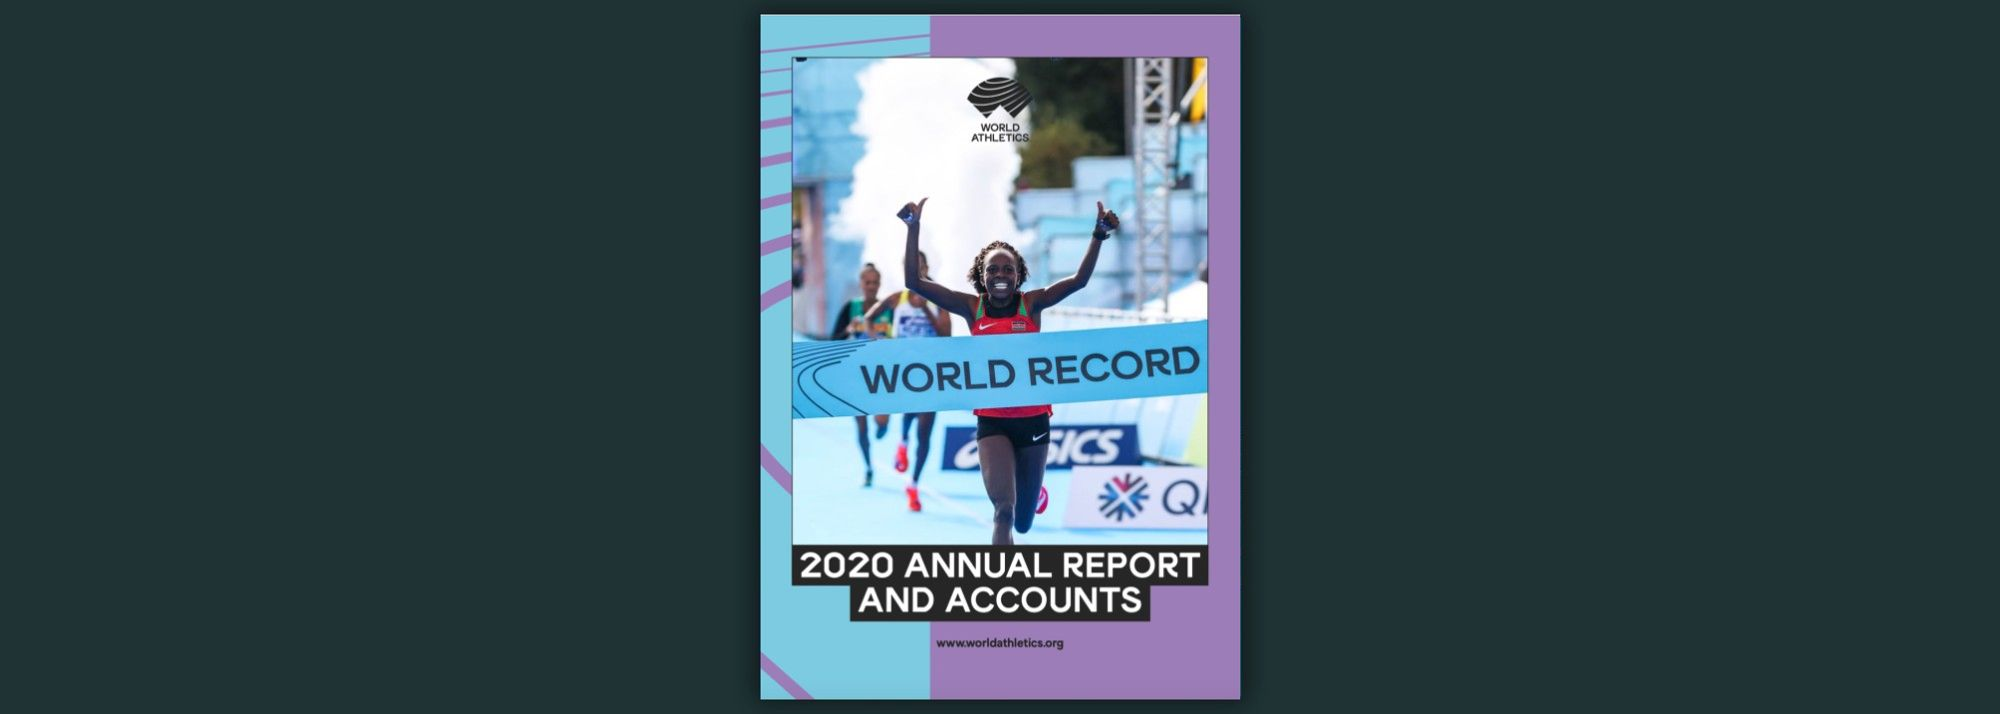 World Athletics has today published its Annual Report for 2020.